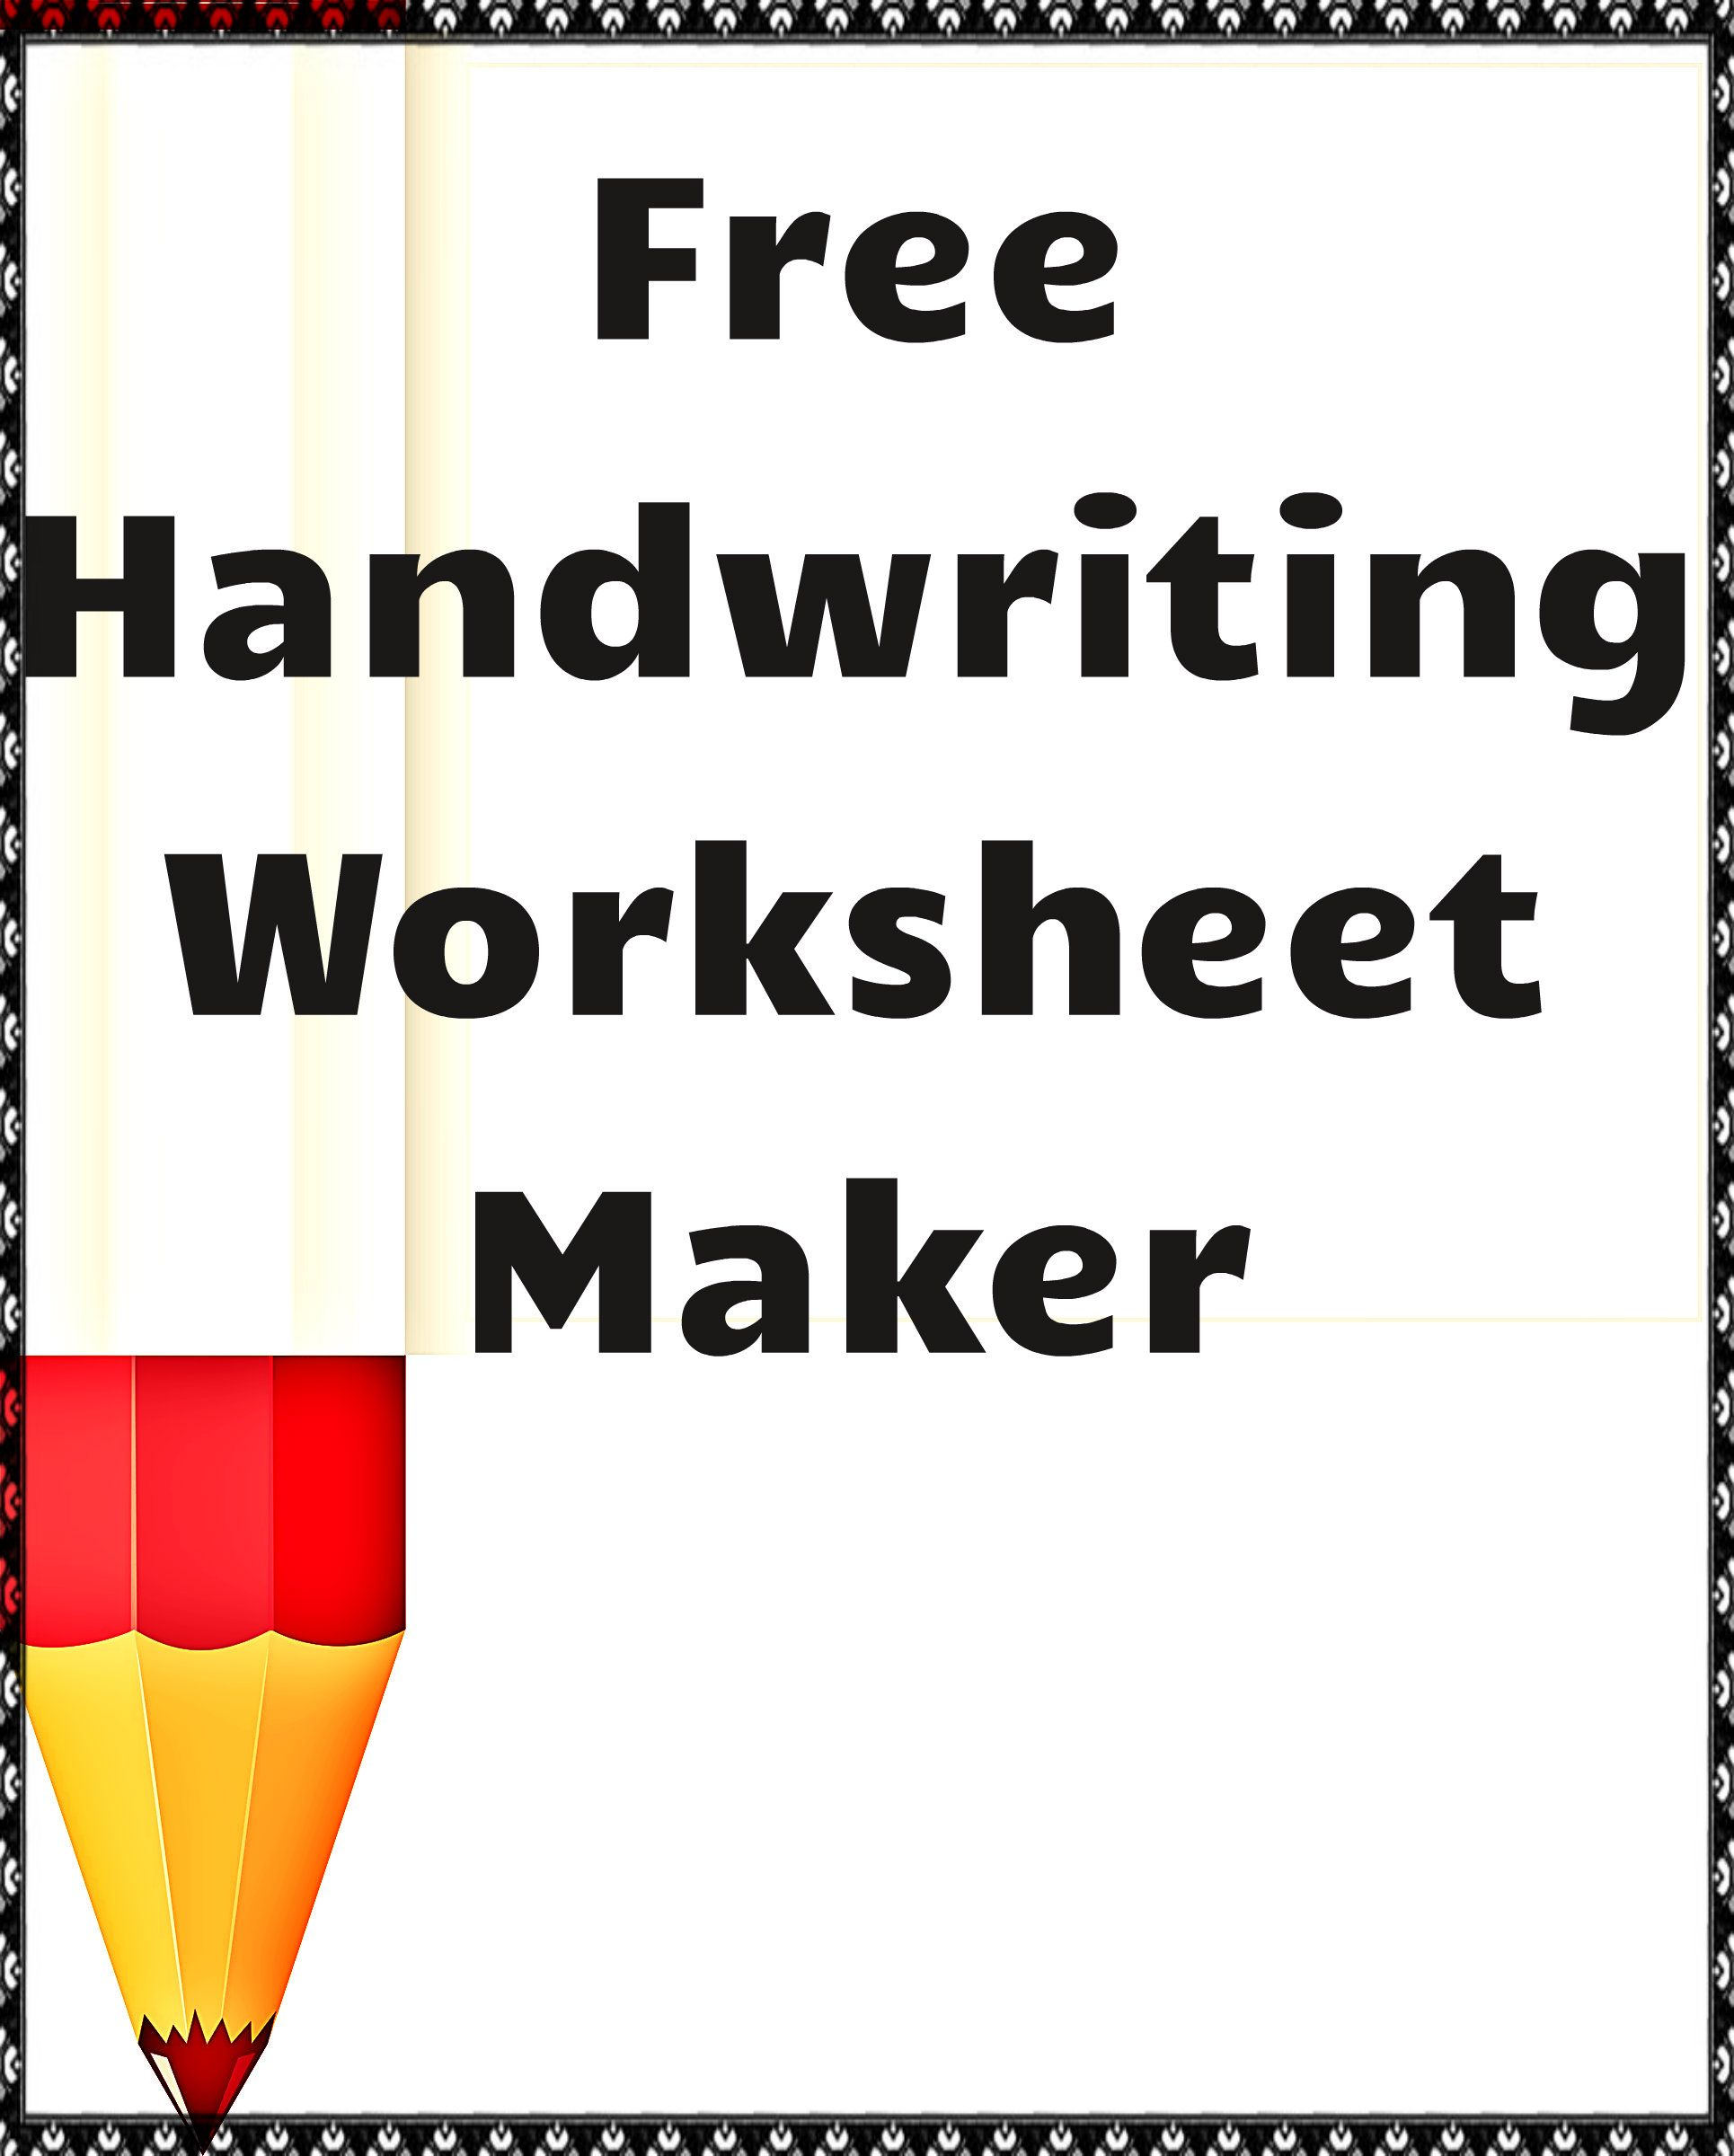 Worksheets Create Your Own Handwriting Worksheets free handwriting worksheet maker kindergartenklub com pinterest maker